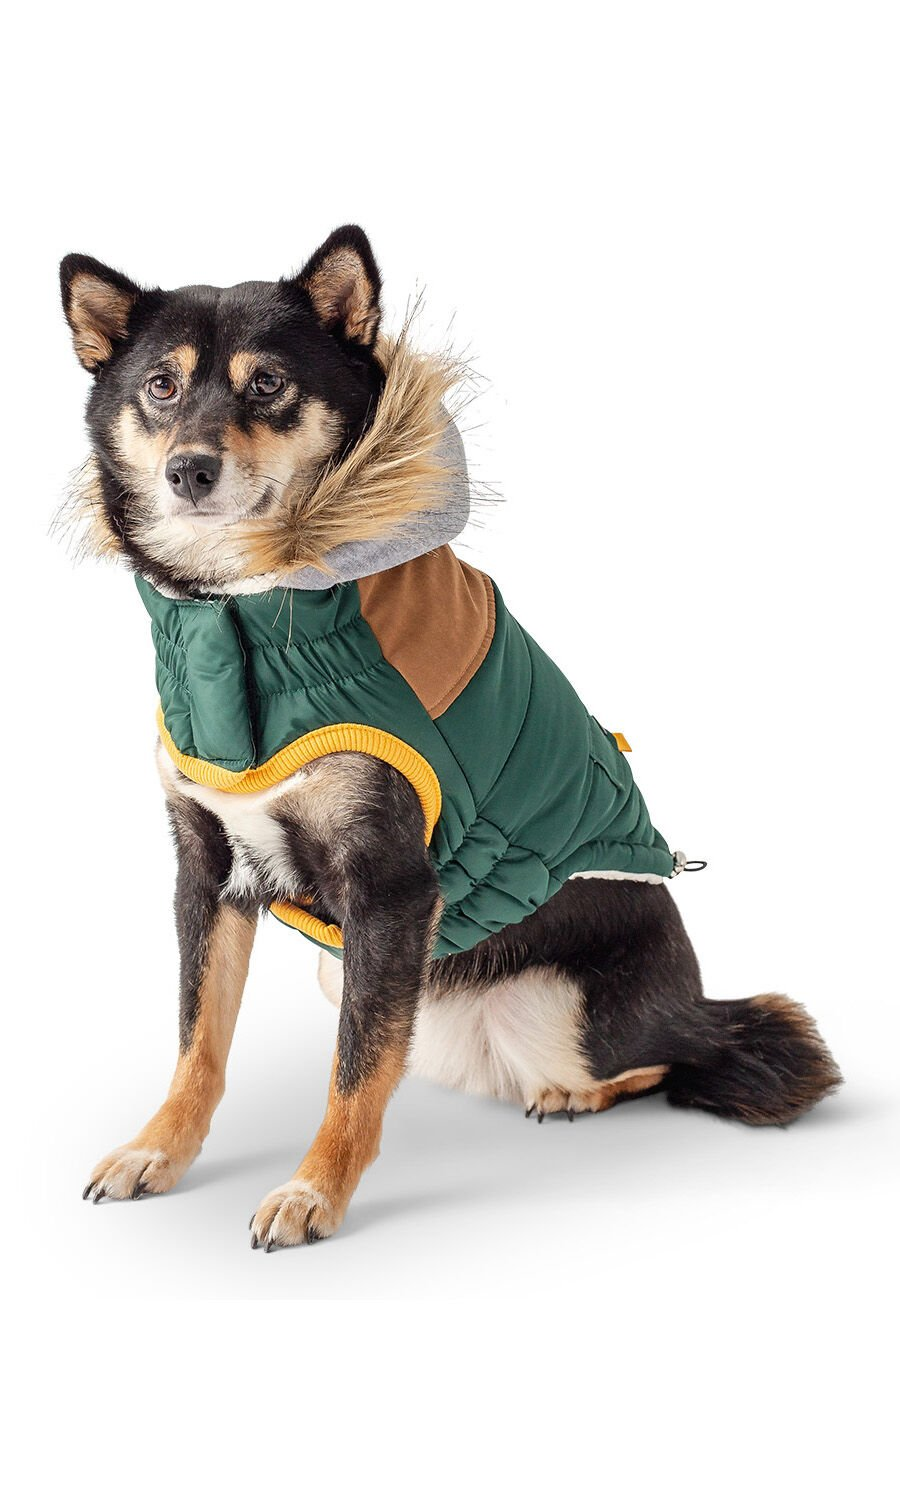 Comfortable, Stylish Dog Clothing Can Help Boost Apparel Sales